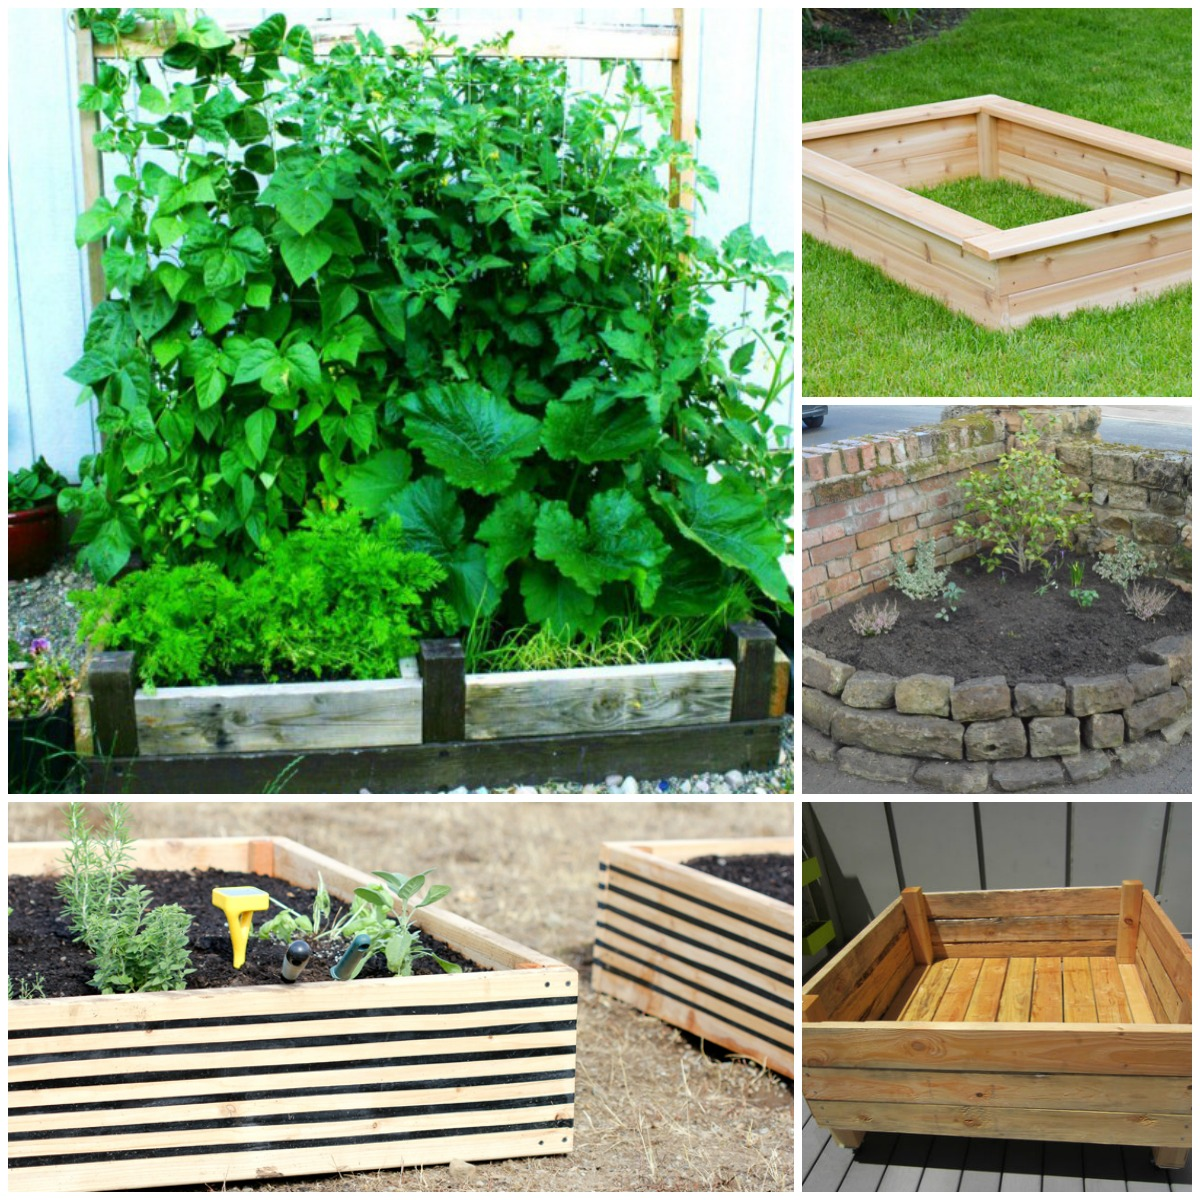 these raised garden bed ideas are so easy and clever, i want DDWWHHB